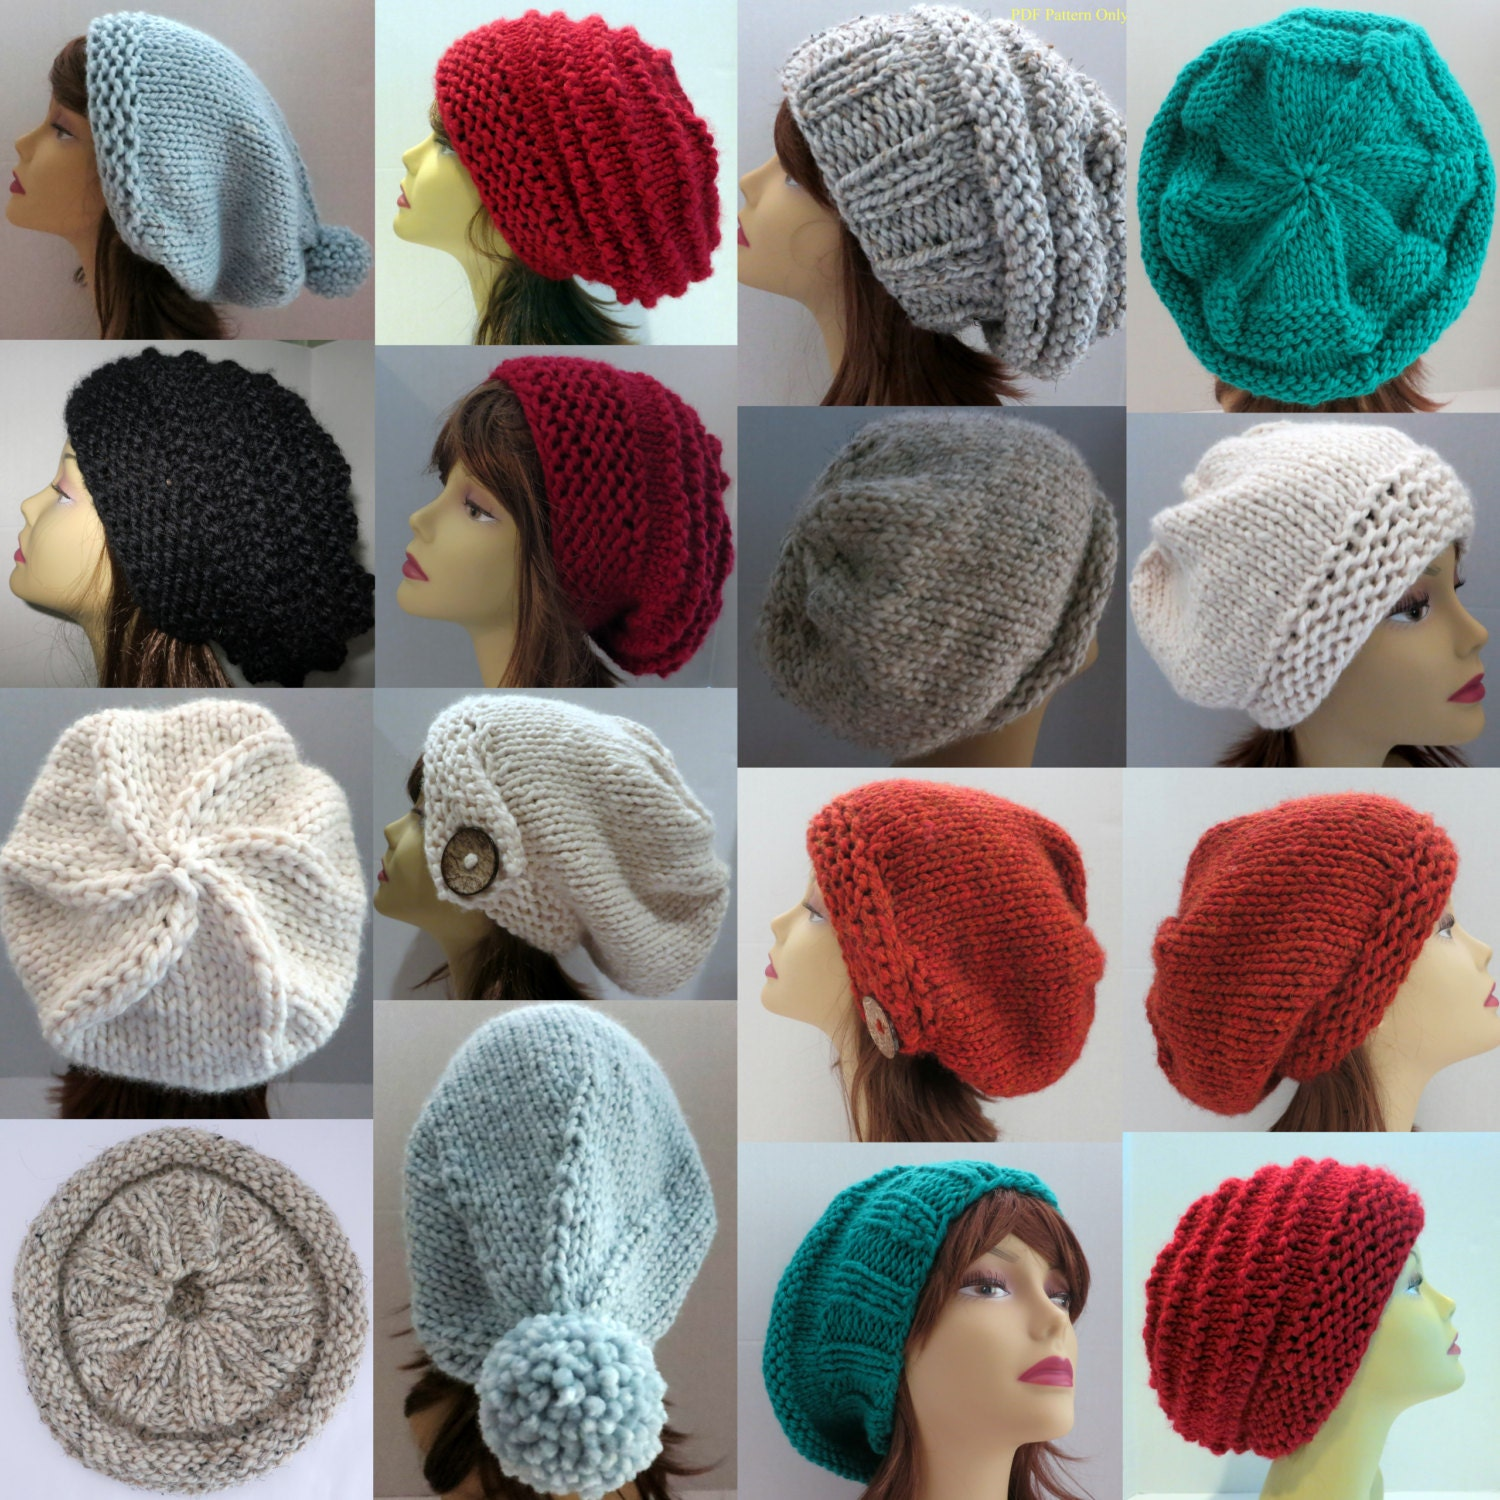 Different Knitting Stitches For Hats : Hat Knitting Pattern to Make 36 Different Hats Slouch Hat